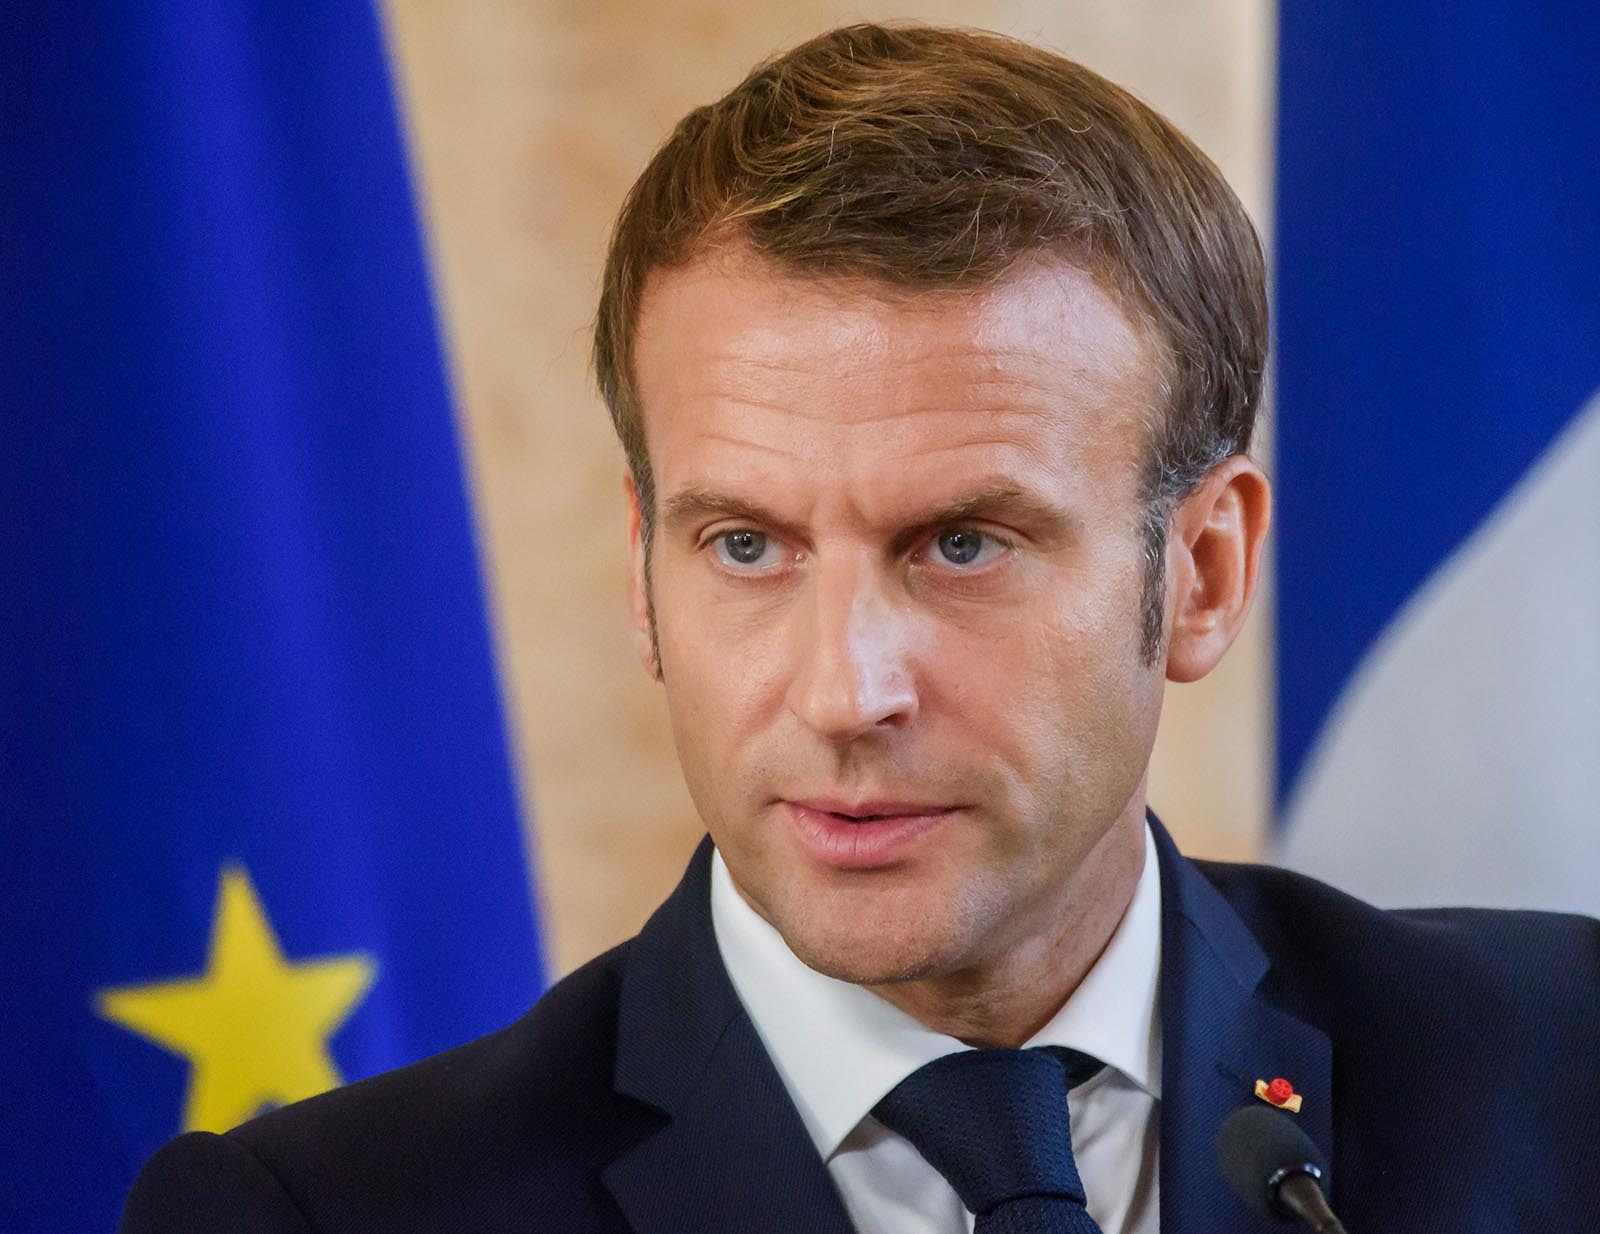 French President Emmanuel Macron attends a news conference on September 30, in Riga, Latvia.